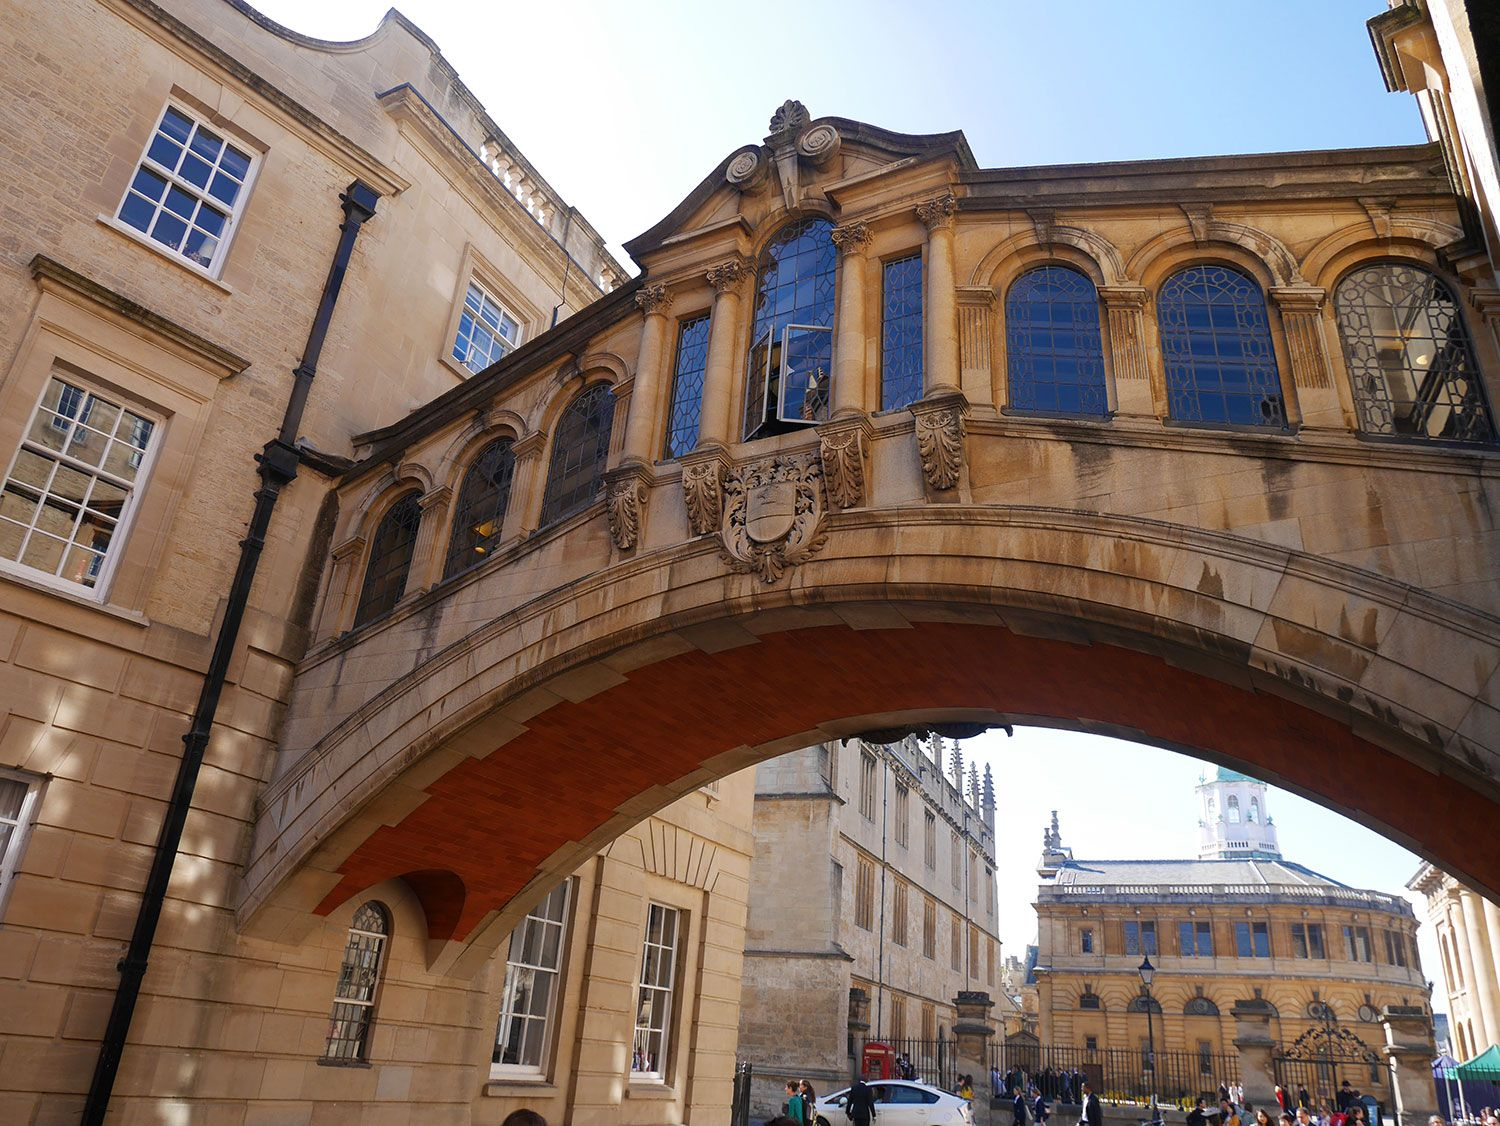 Bridge of Sighs, Oxford day trip